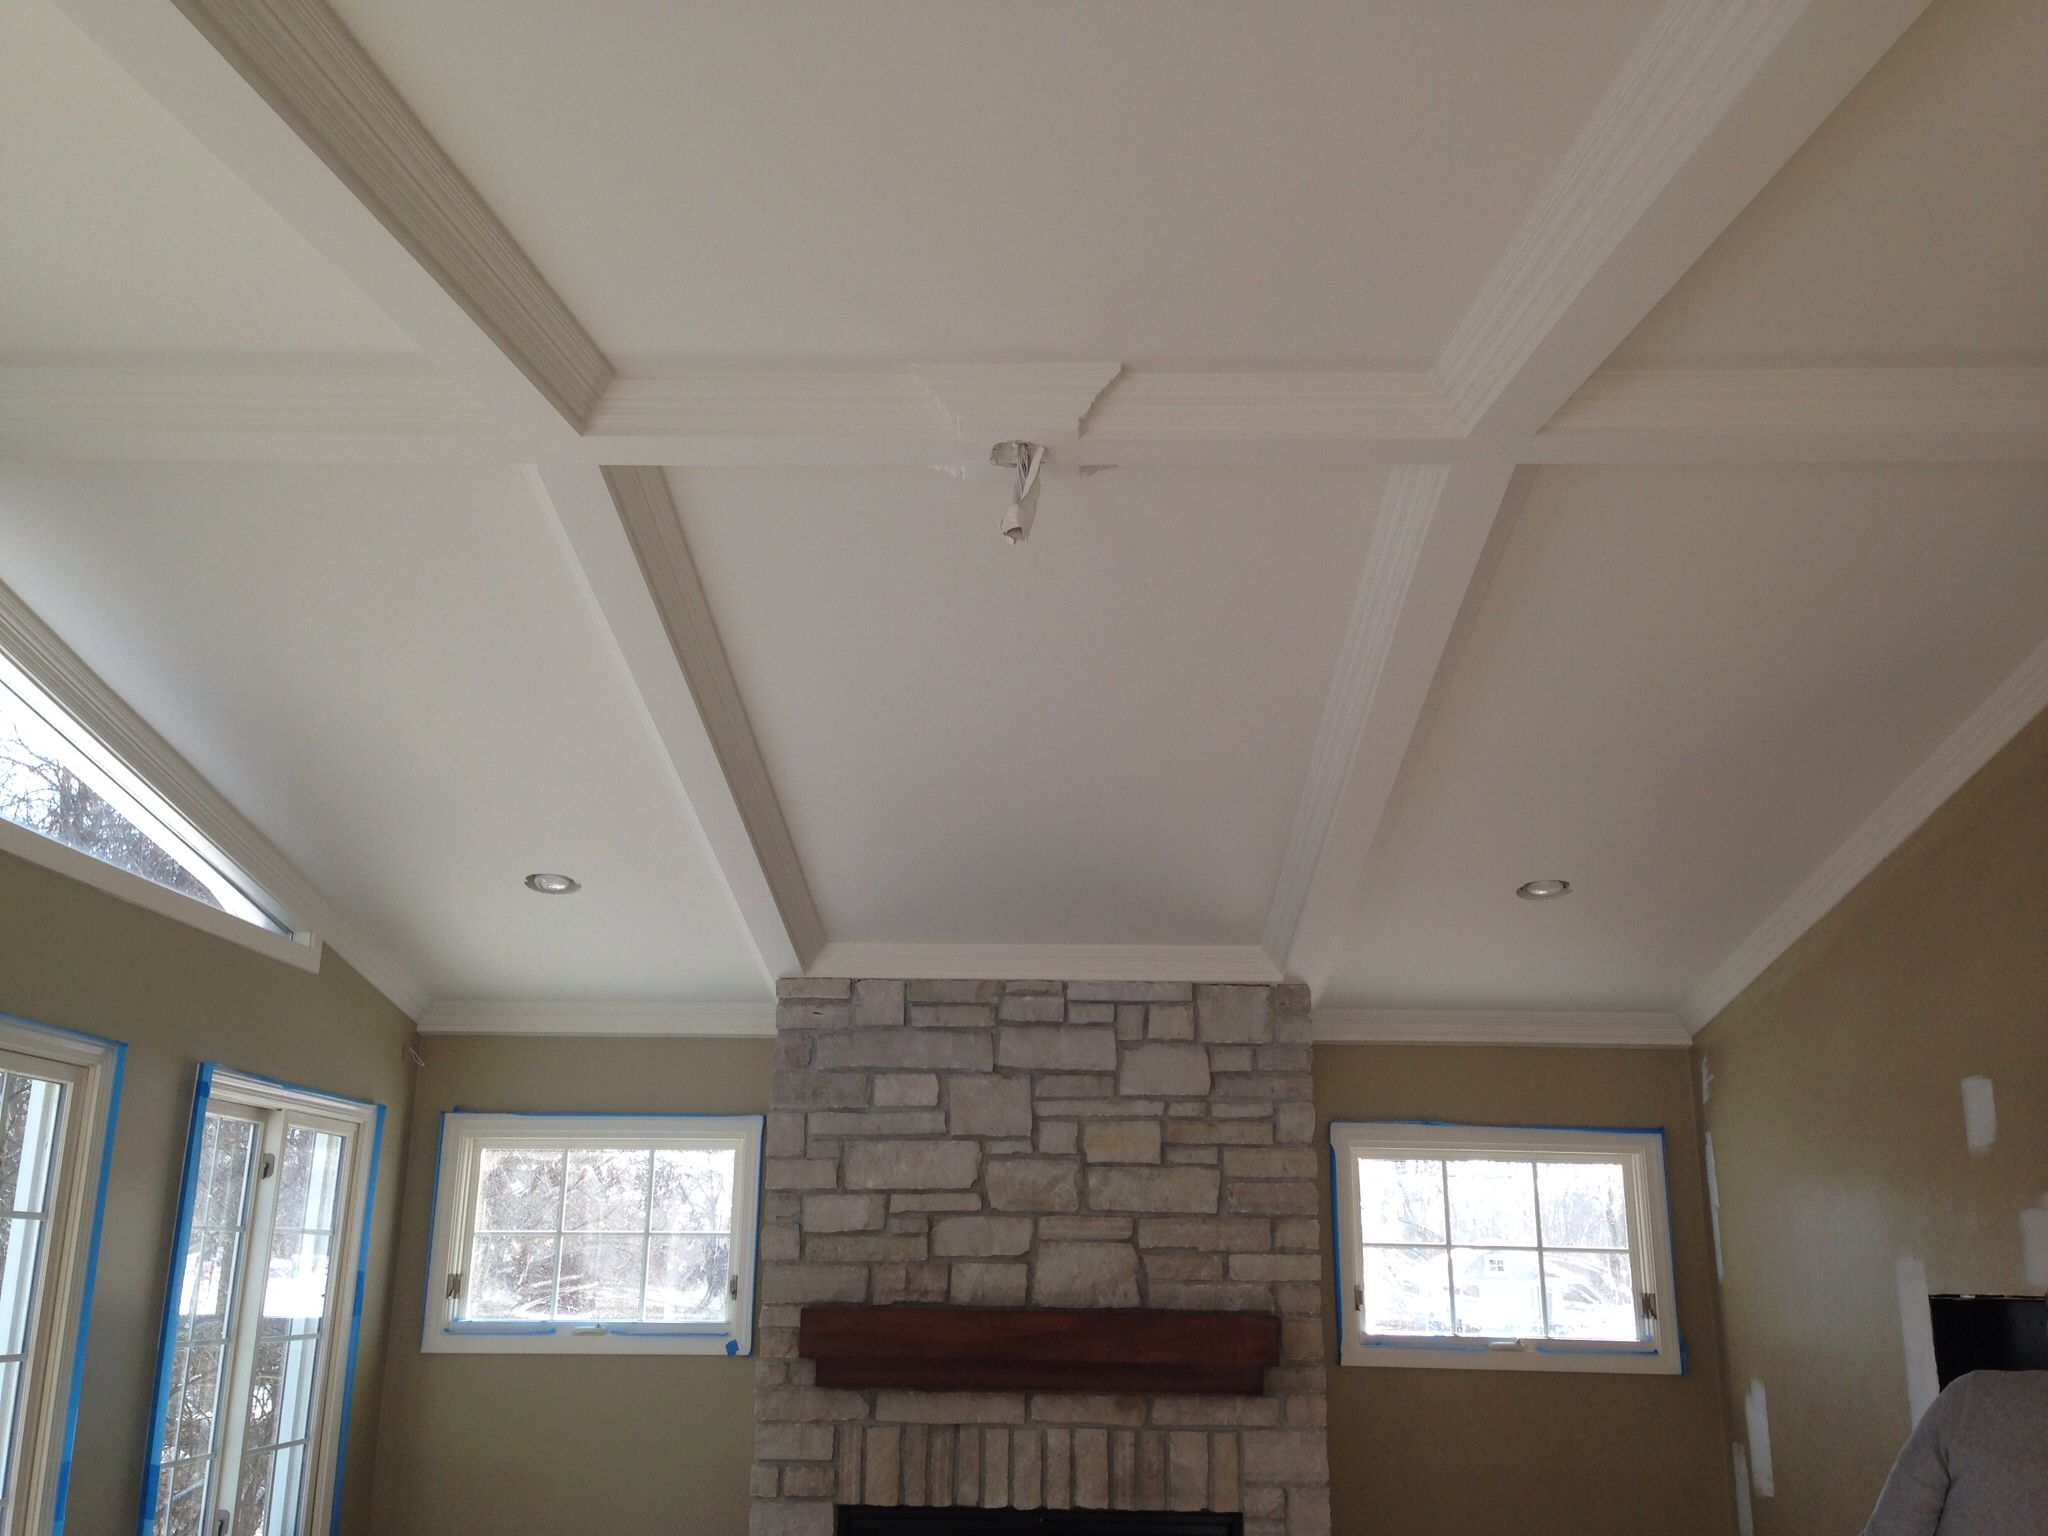 Vaulted Coffered Ceiling We Completed Http://www.houzz.com/pro